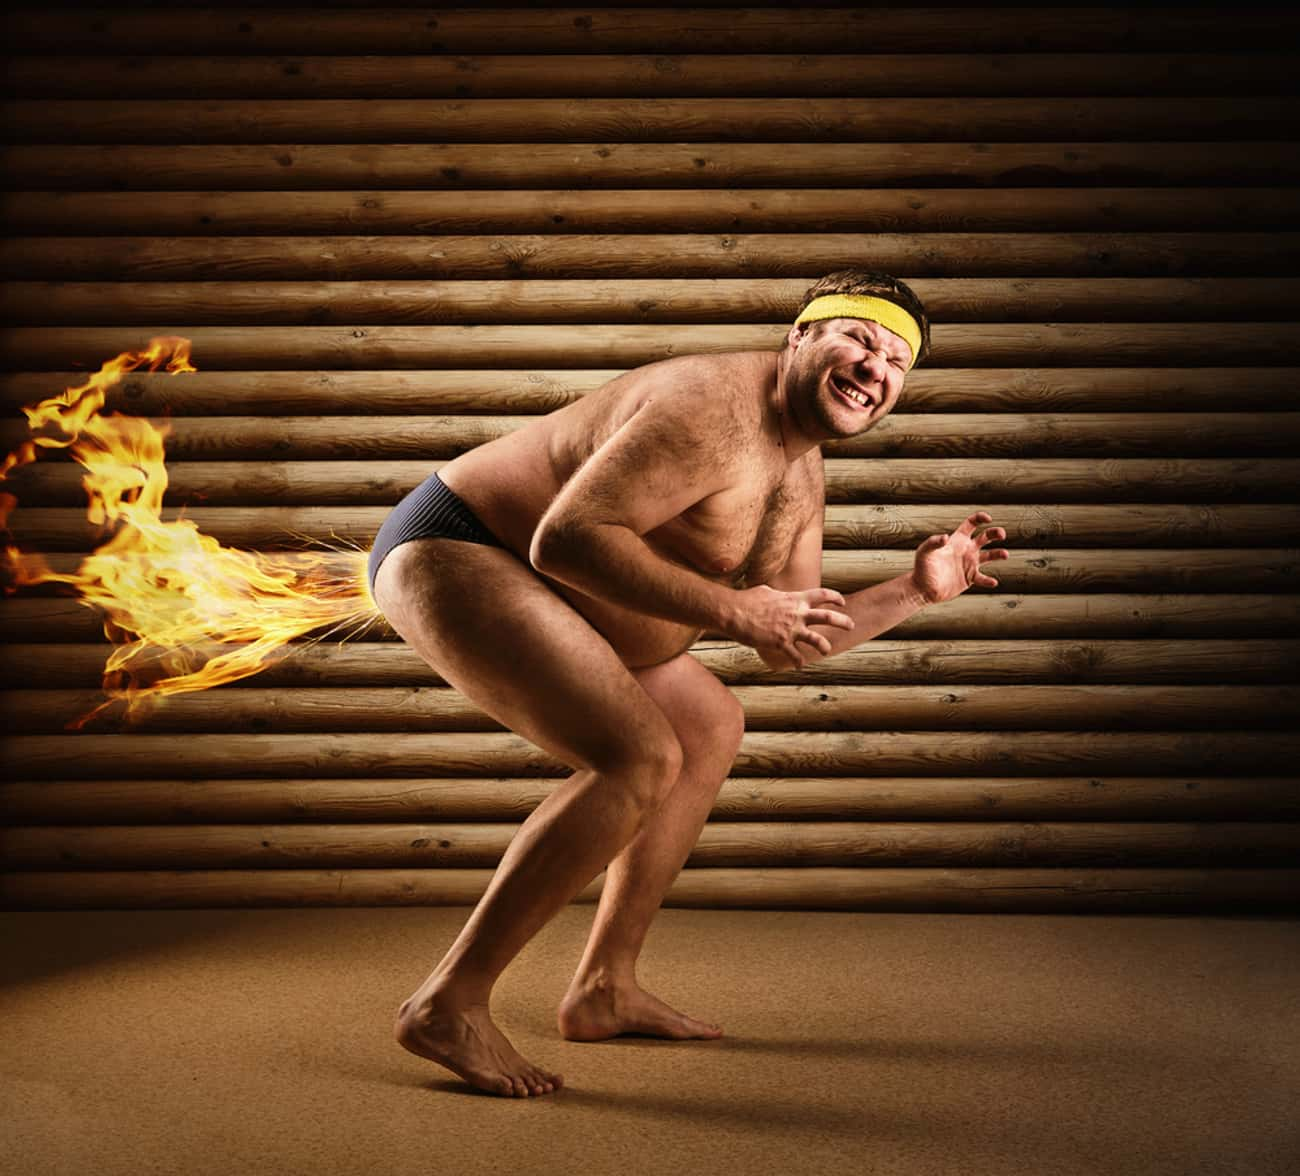 Man Burns Calories By Farting  is listed (or ranked) 4 on the list The Most Offensively Over-the-Top Stock Images of Fat People